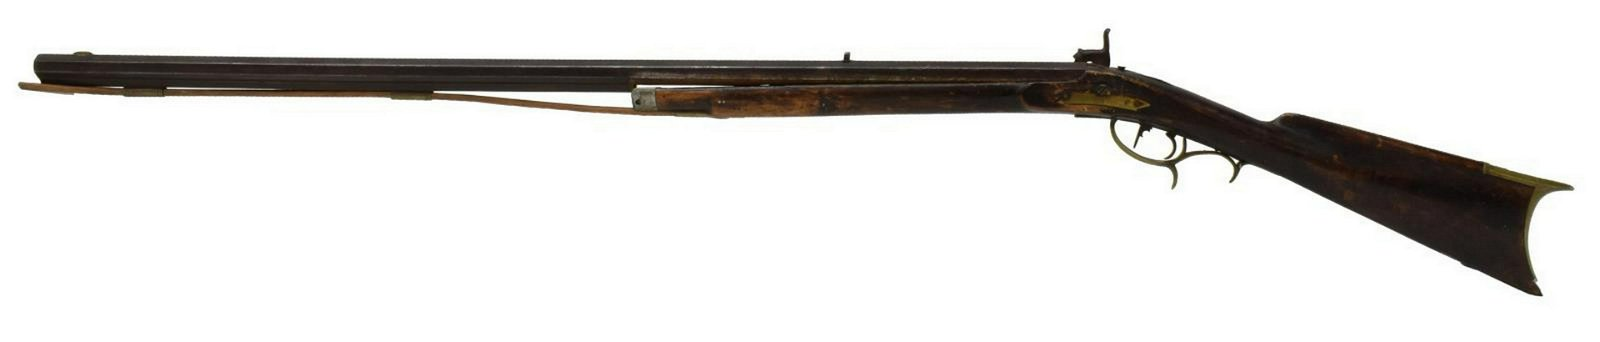 AMERICAN HALF STOCK PERCUSSION LONG RIFLE, PSJ